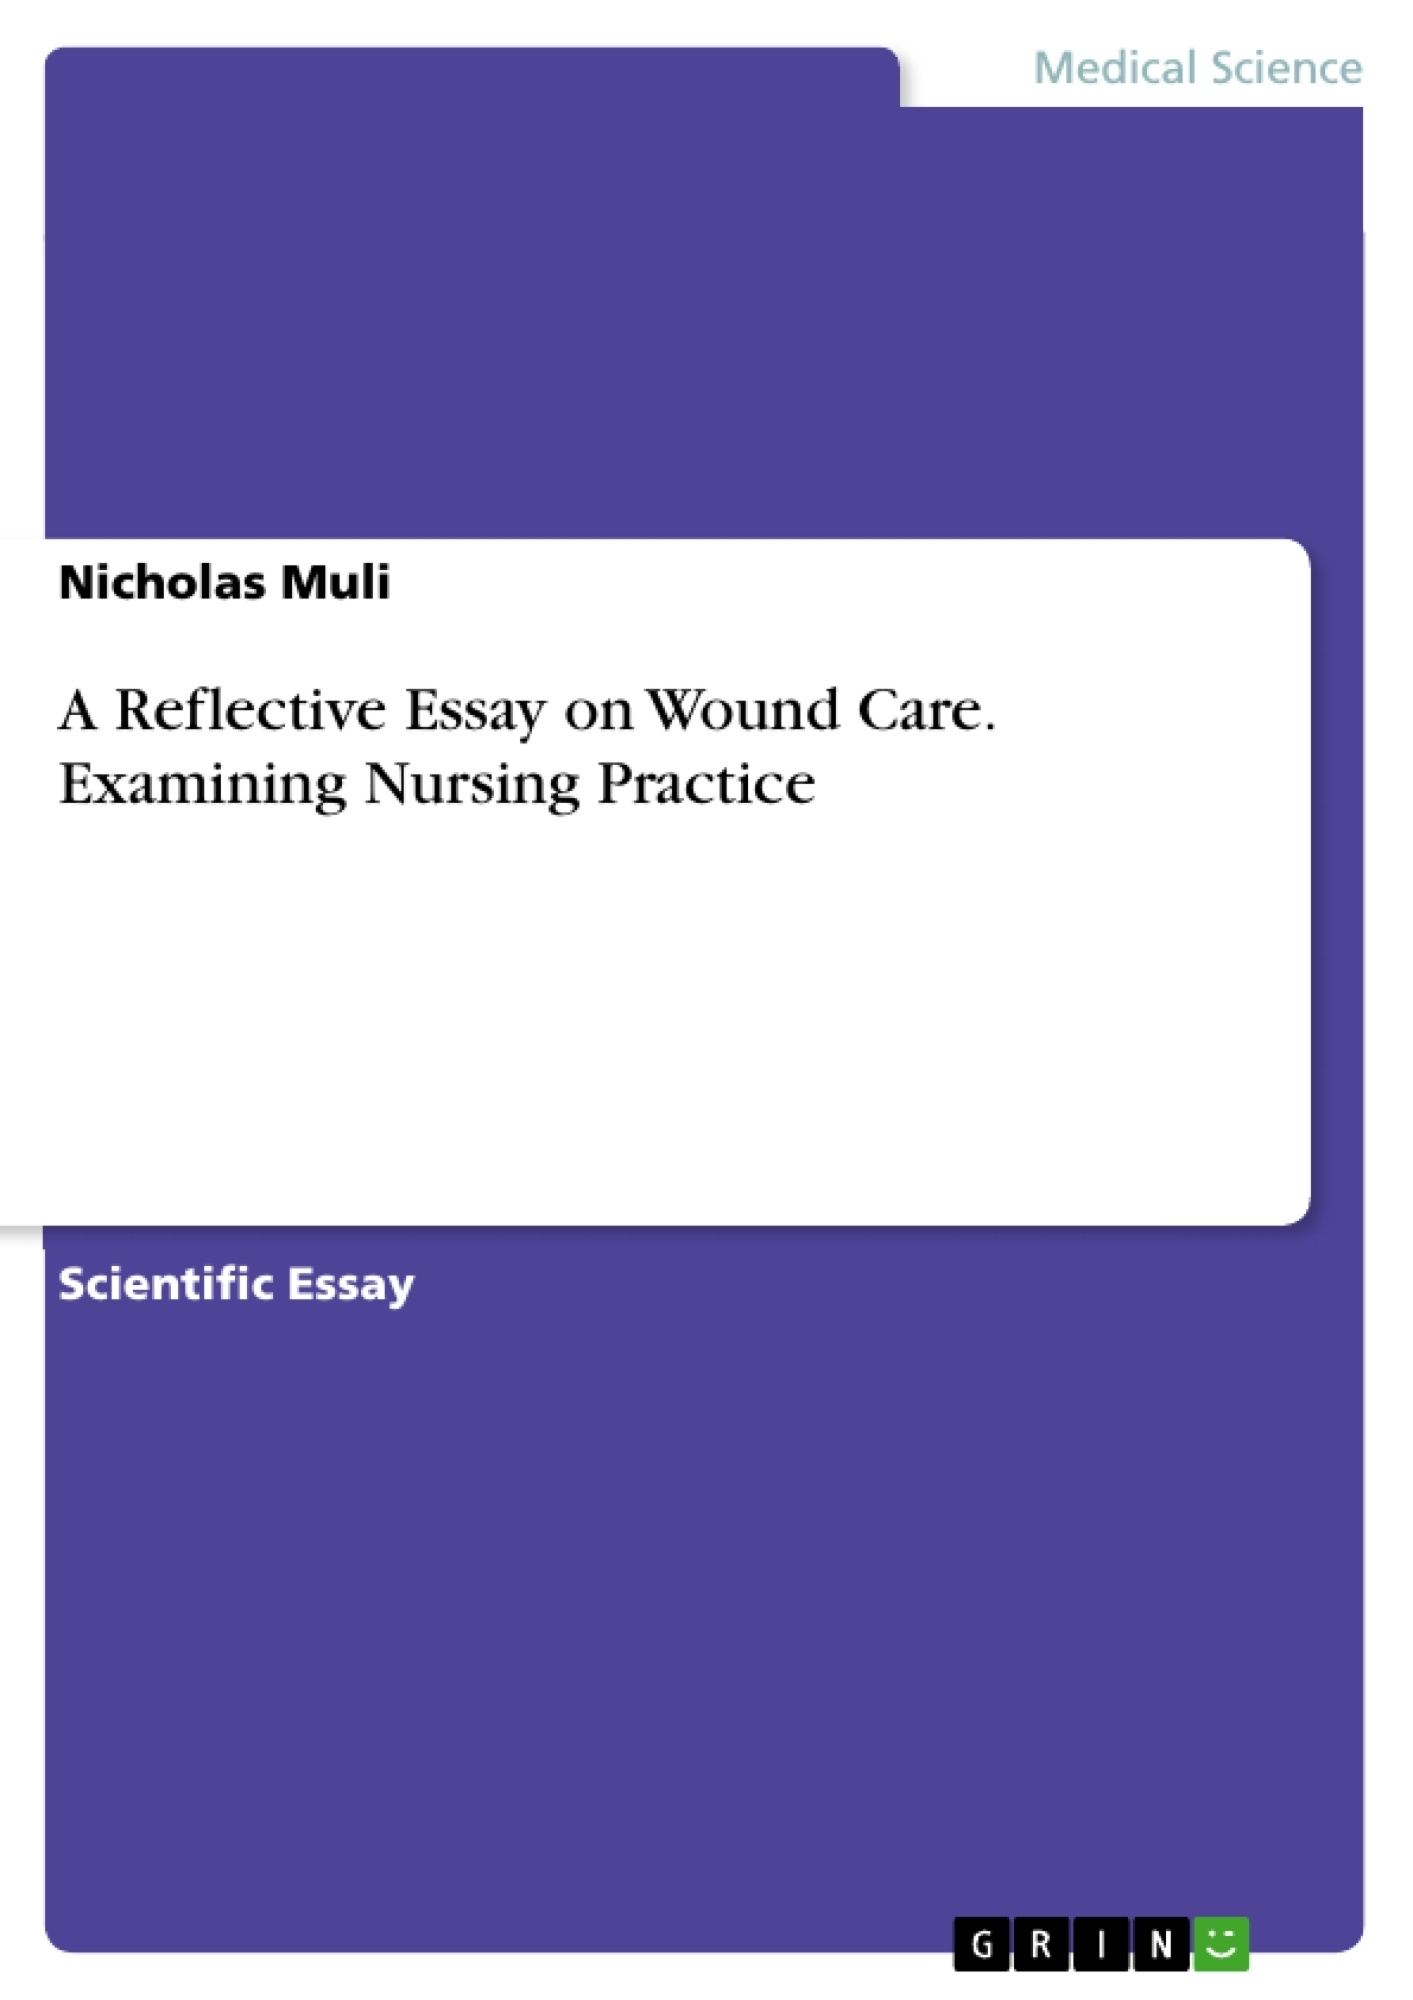 a reflective essay on wound care examining nursing practice upload your own papers earn money and win an iphone 7